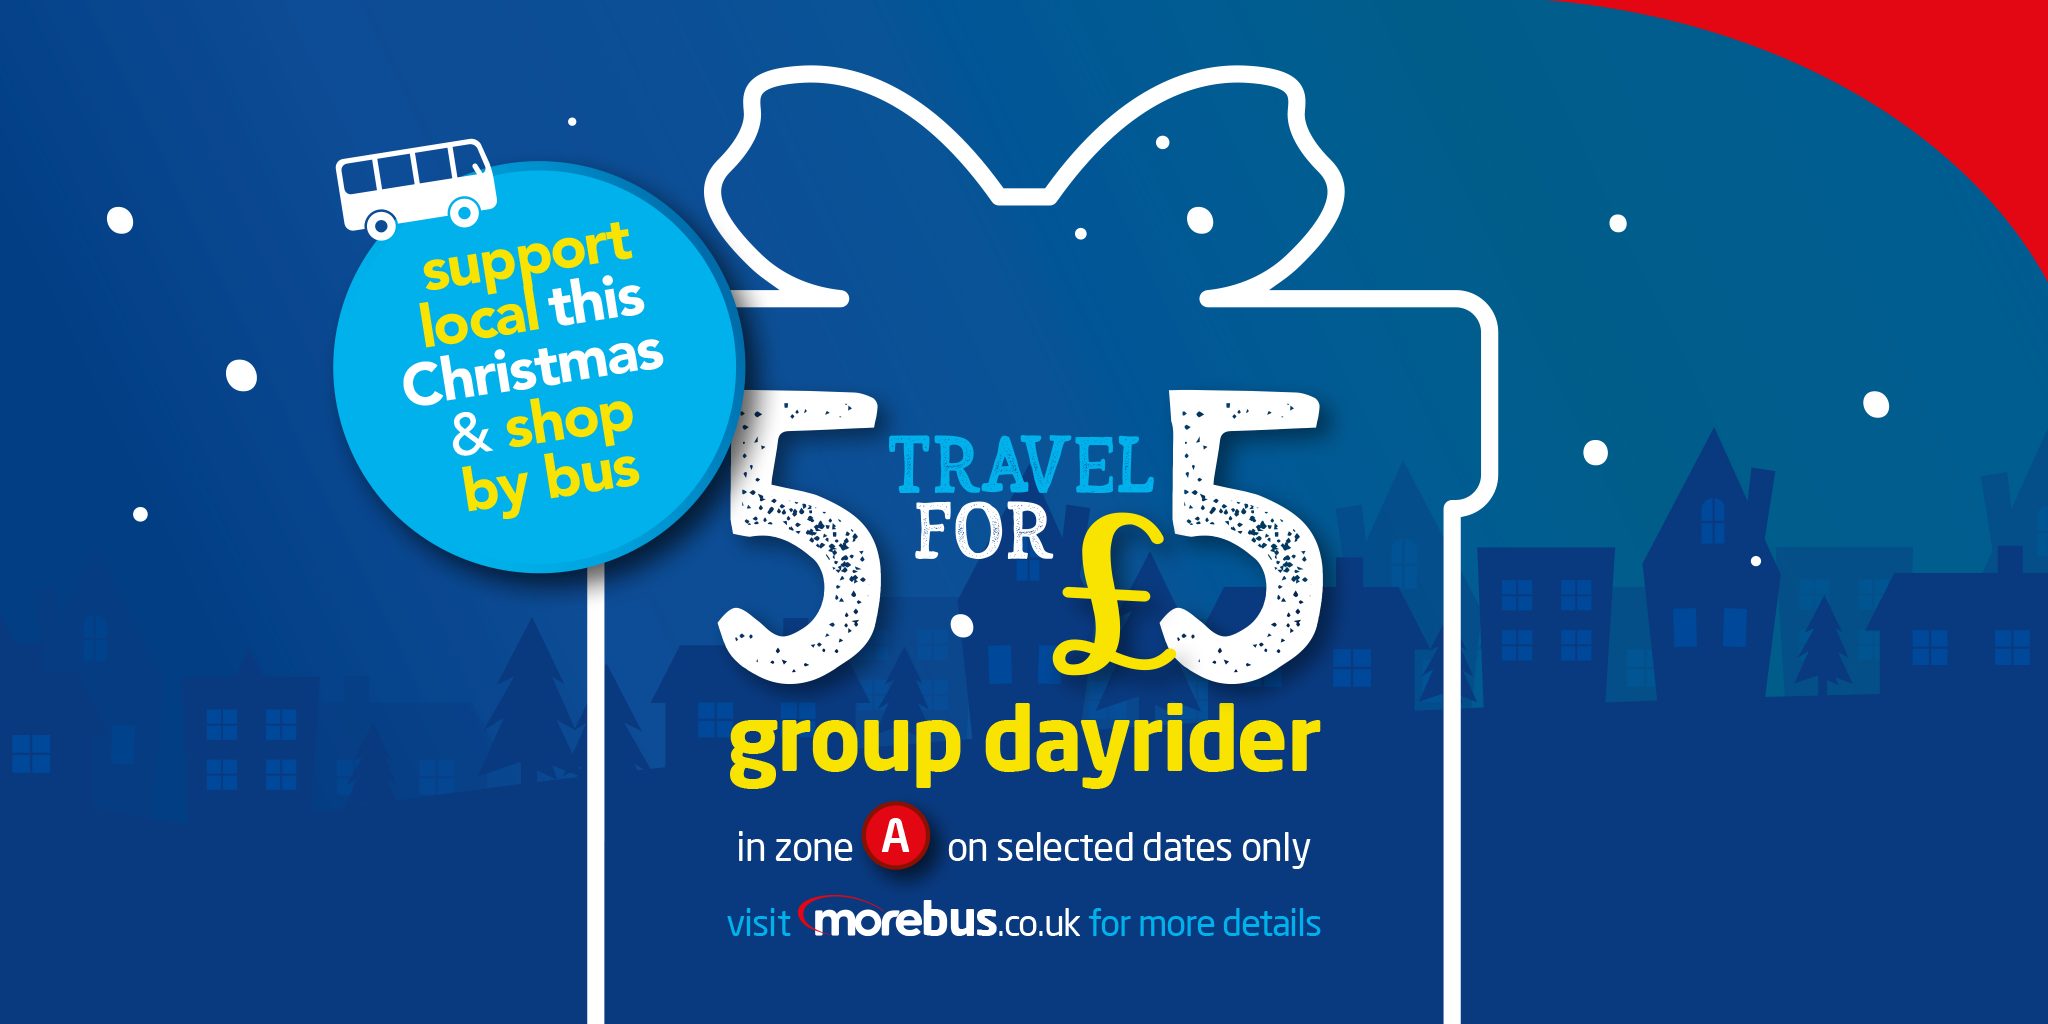 Image of a christmas present saying '5 travel for £5 group dayrider in zone A on delected dates only. Visit morebus.co.uk for more details' with a bus and text saying 'support local this Christmas and shop by bus'